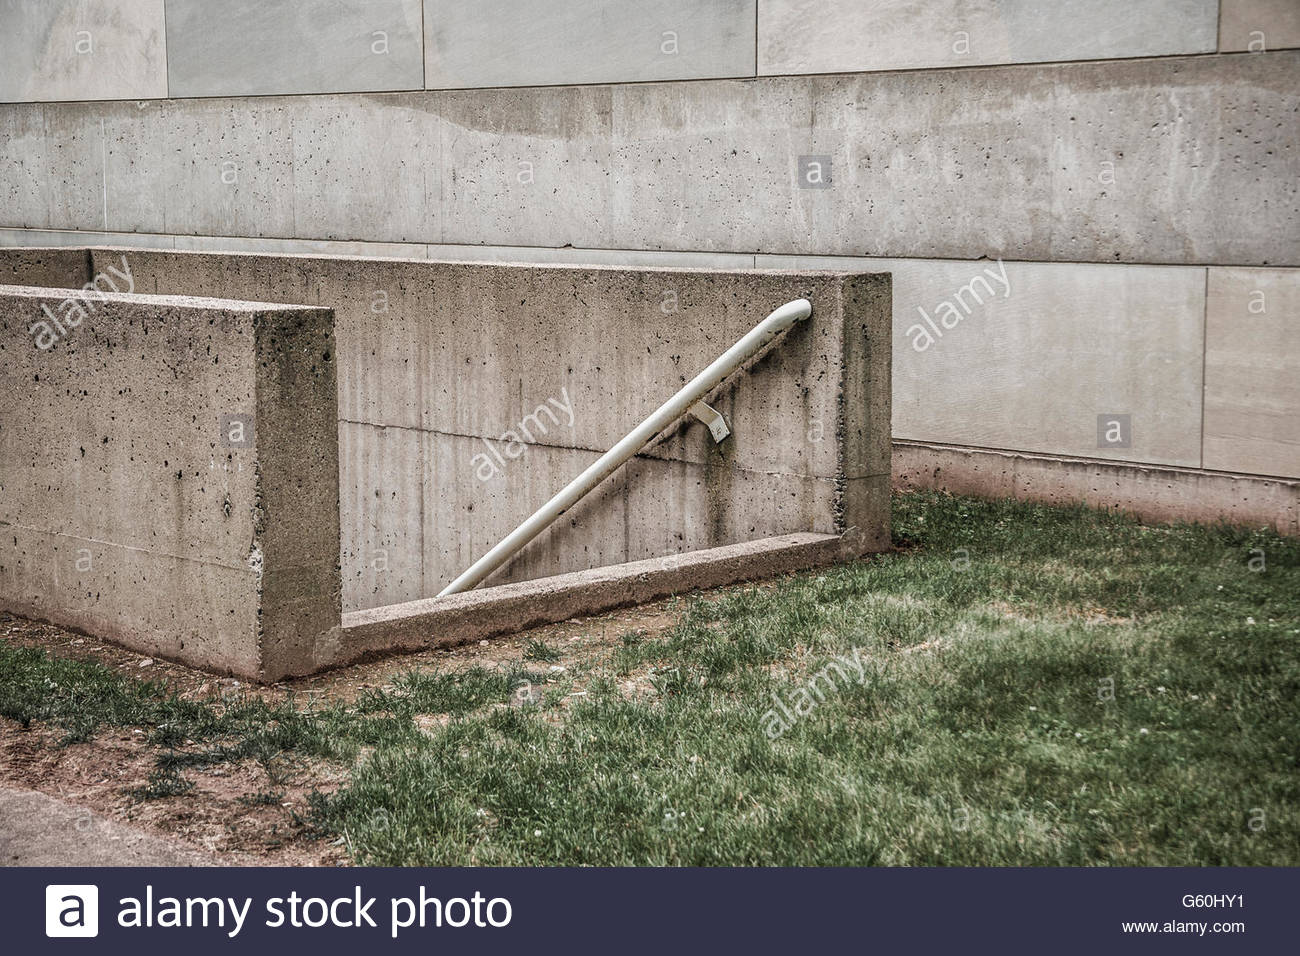 Basement Entrance To A Concrete Building Stock Photo